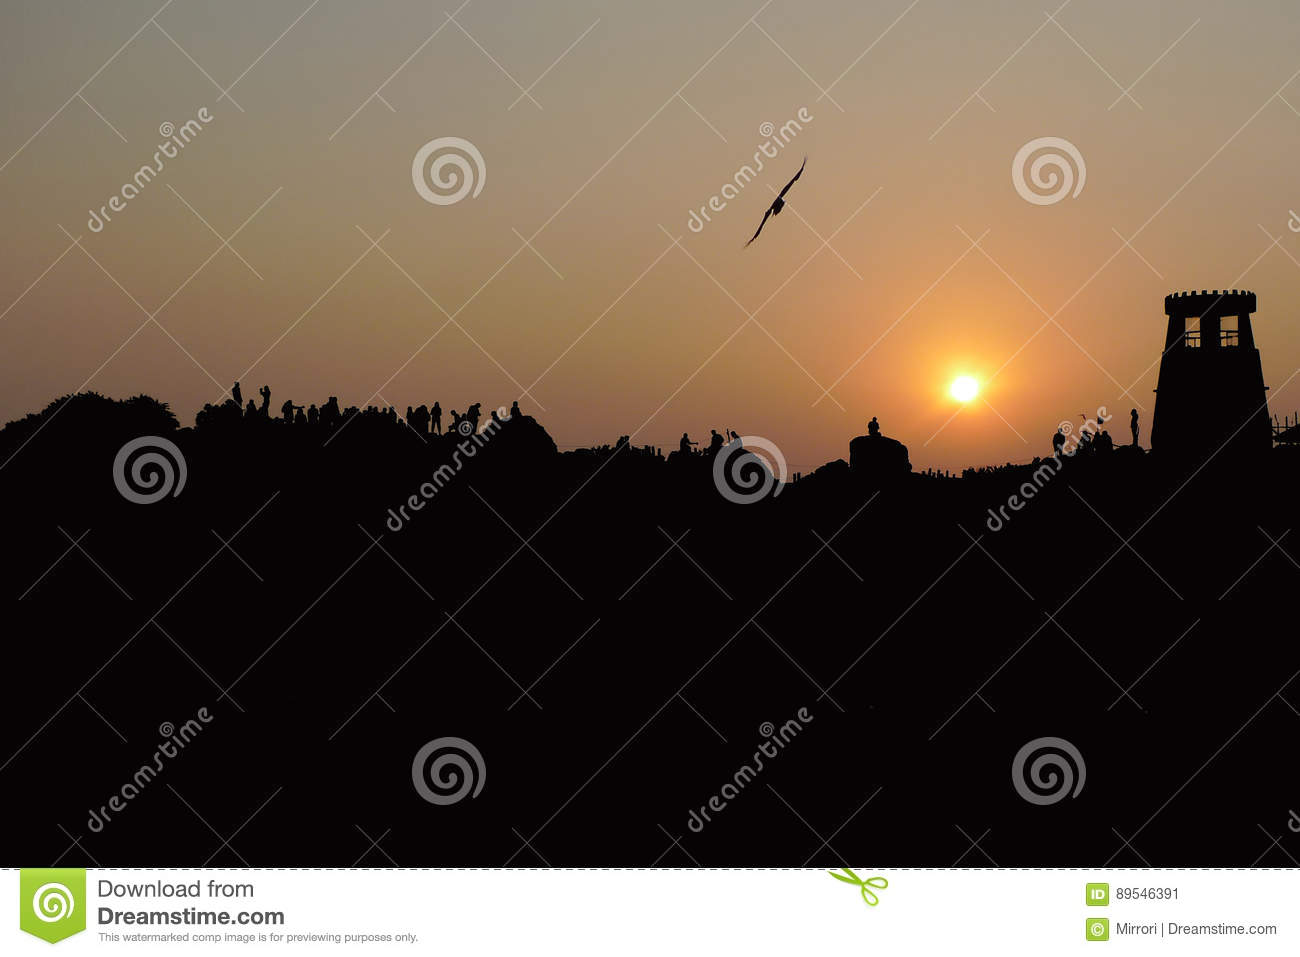 Black silhouette of the hill, people`s figures, a tower on the background of the orange sunset sky with a disc of the sun, in the